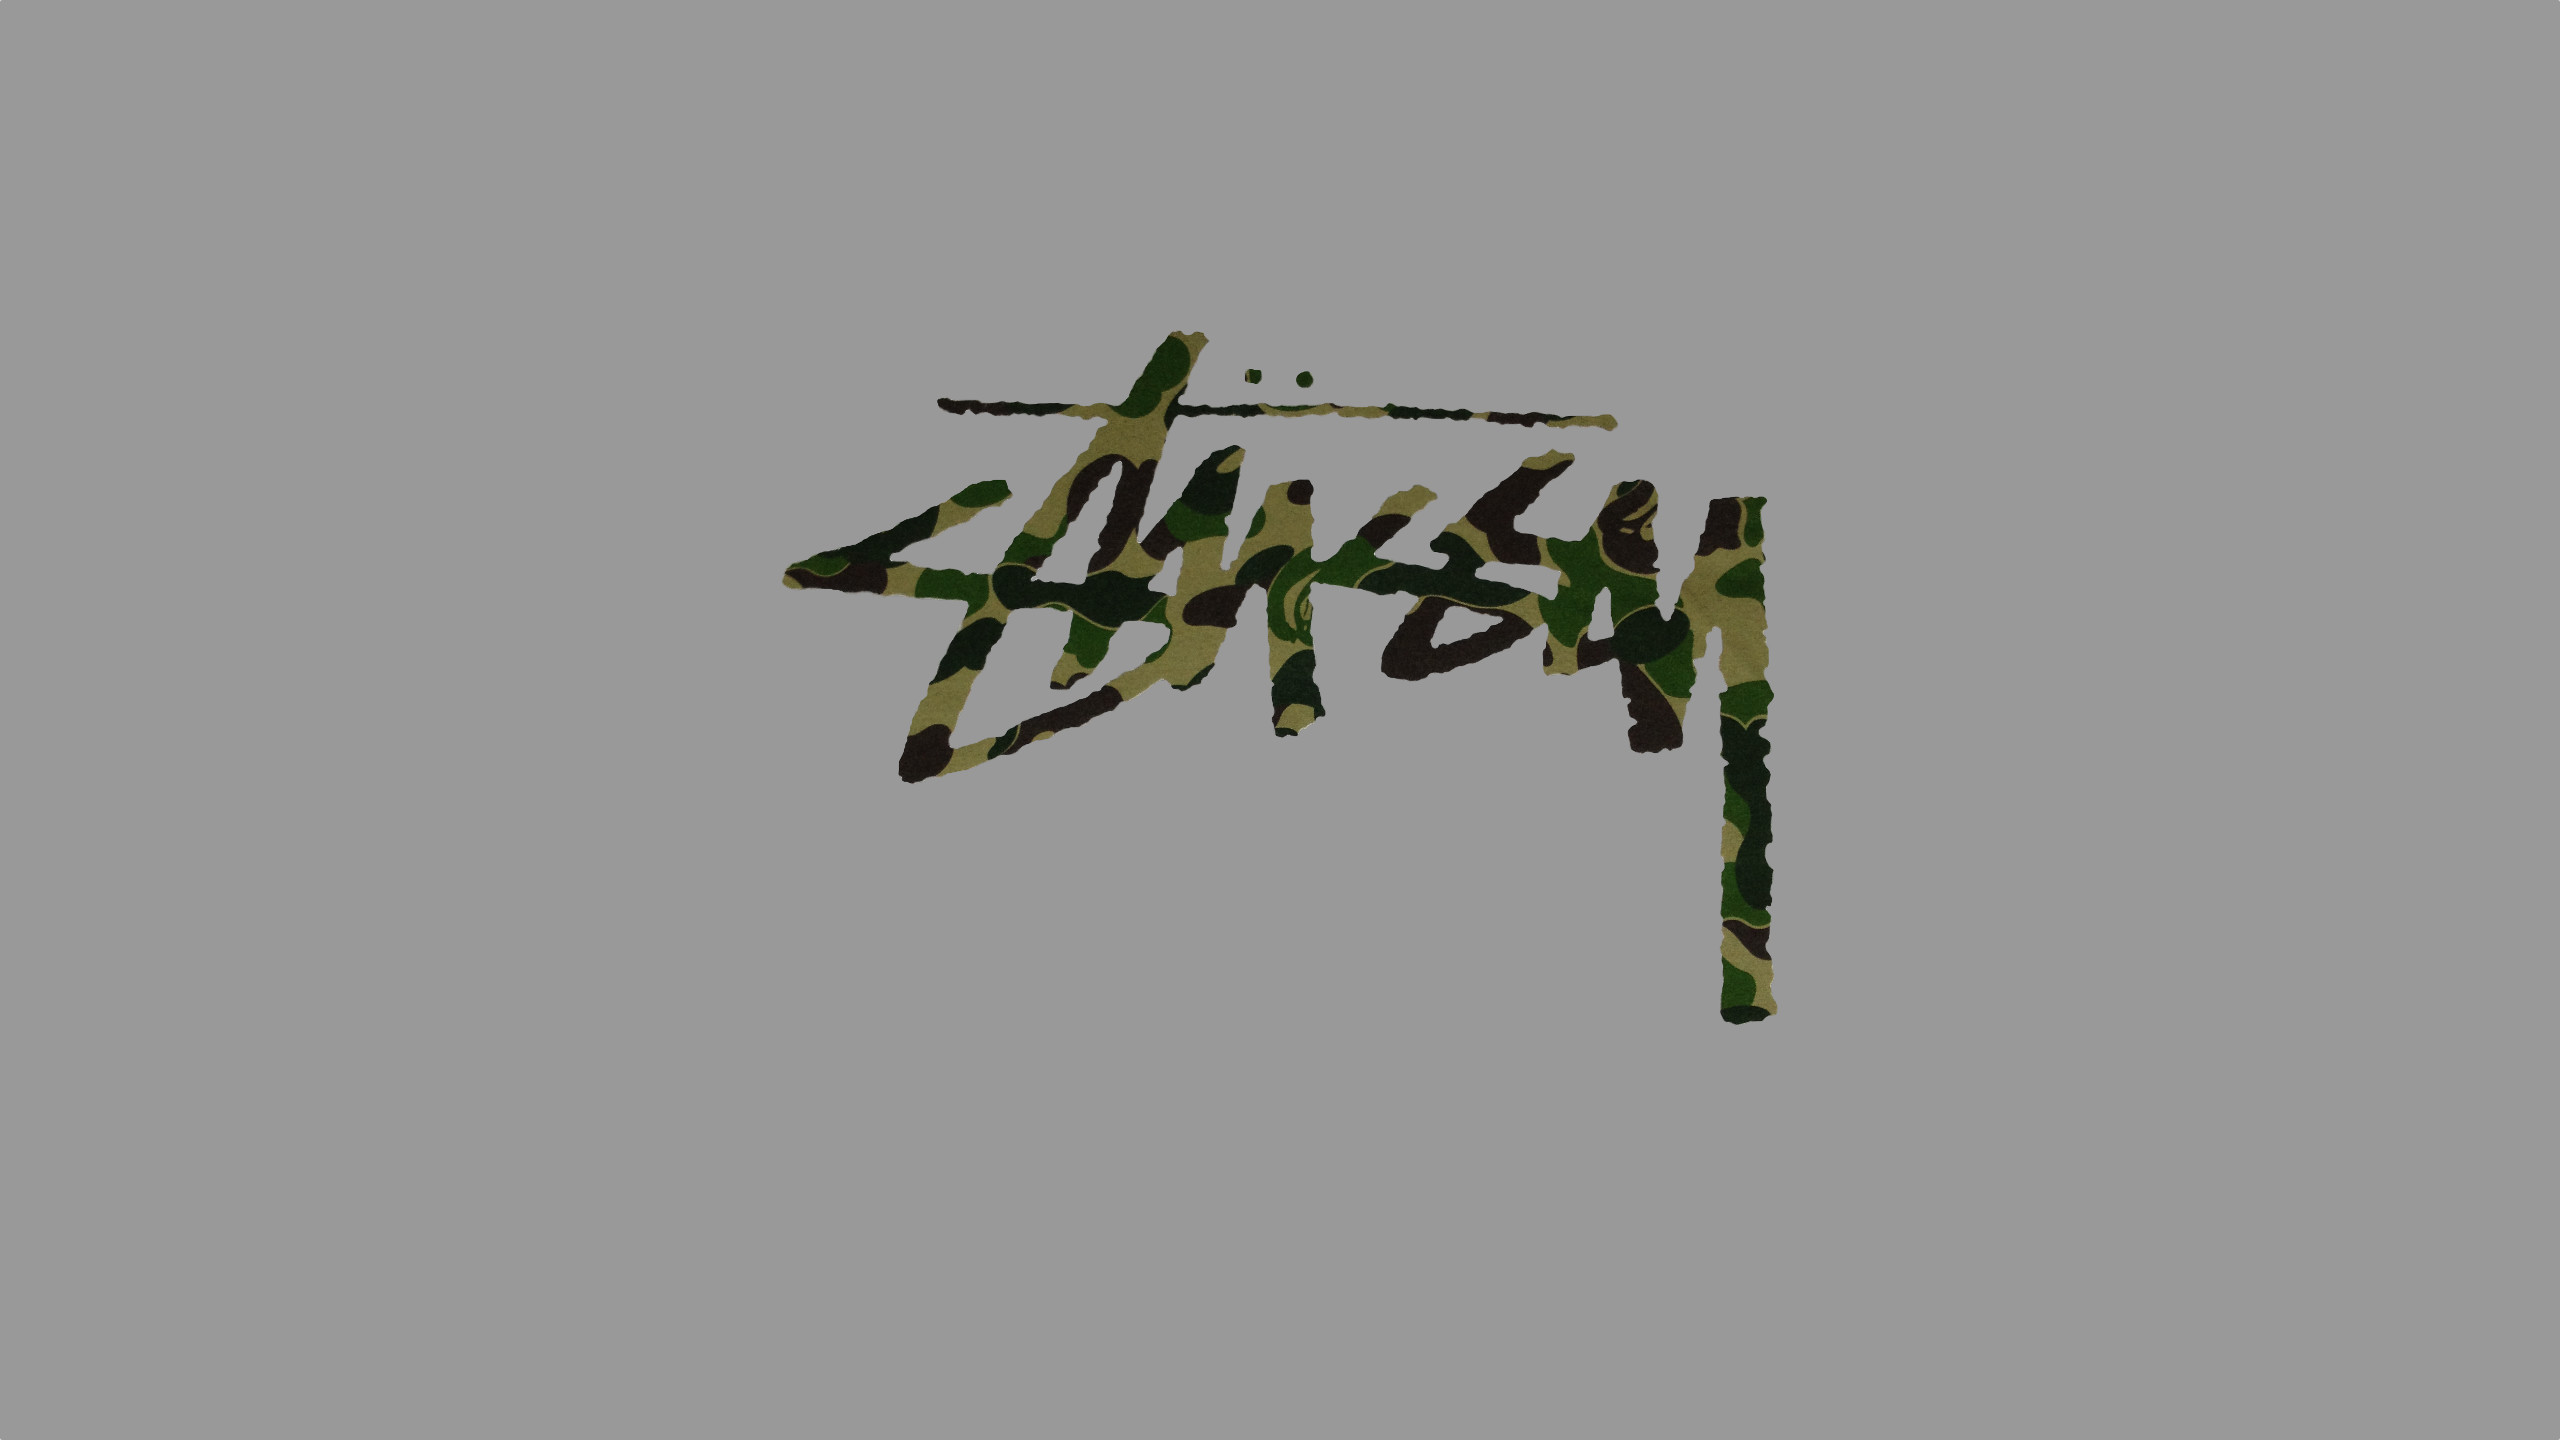 2560x1440 Displaying Images For - Stussy Wallpaper.